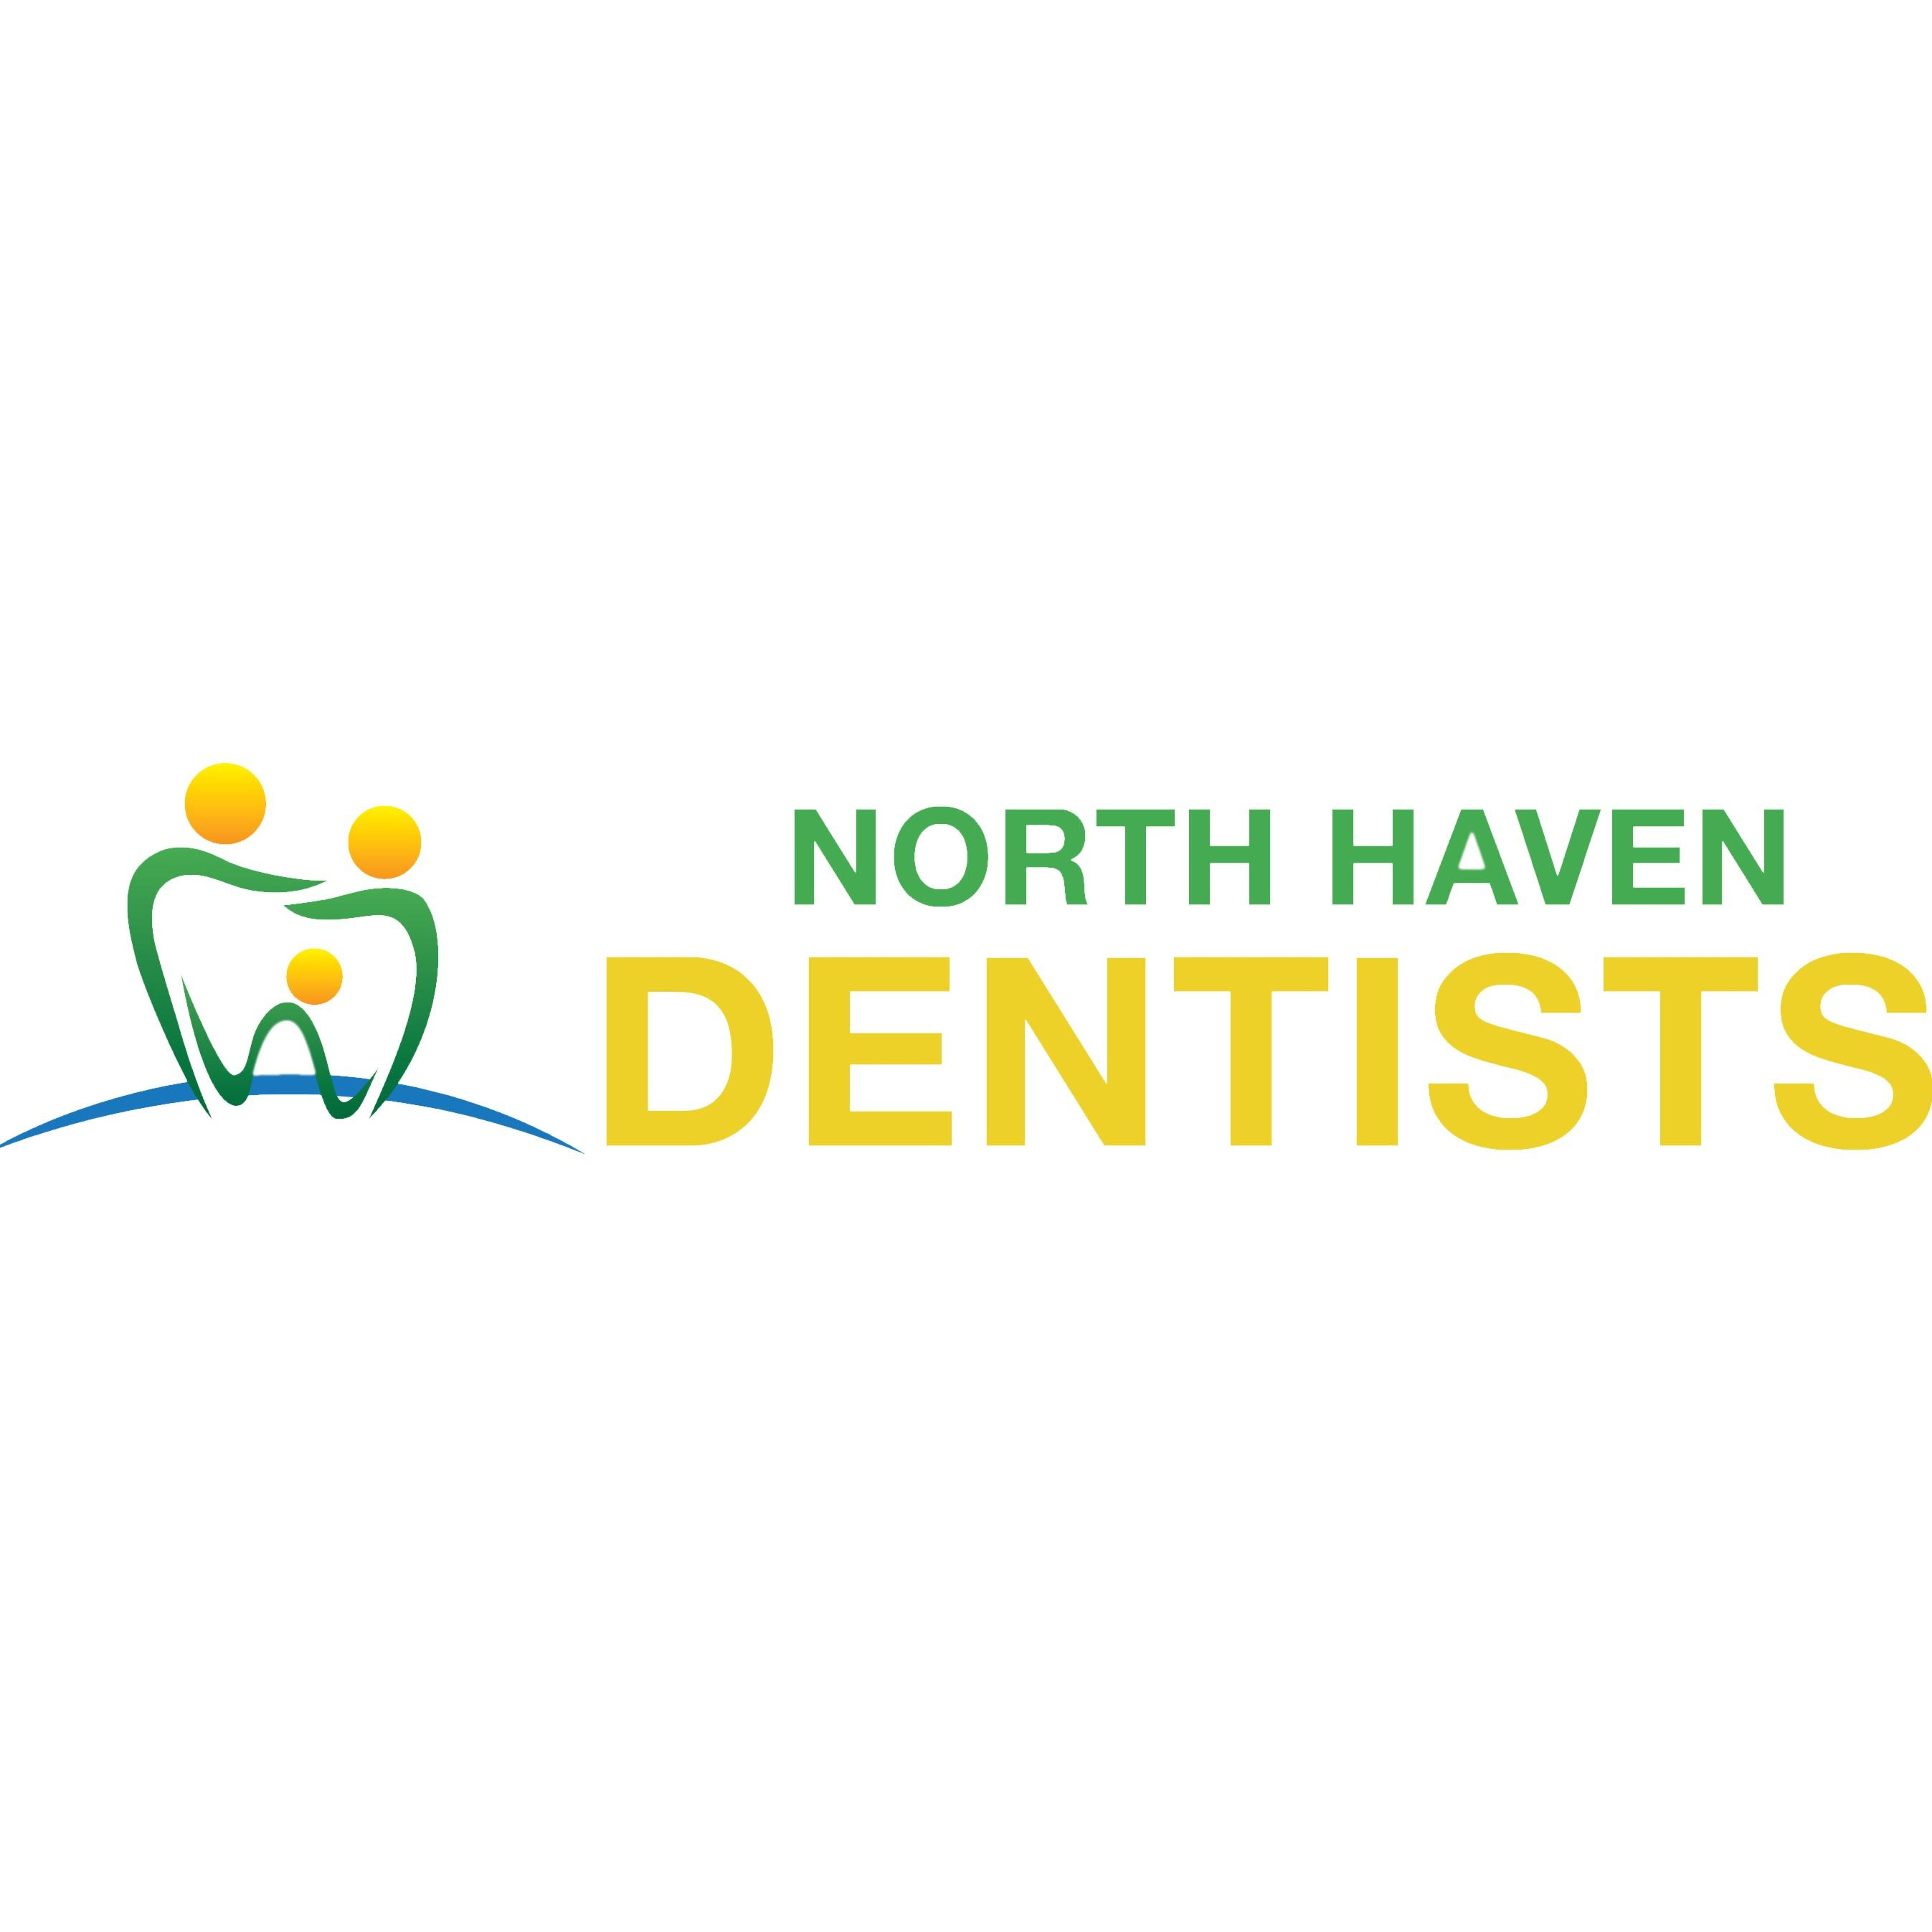 North Haven Dentists